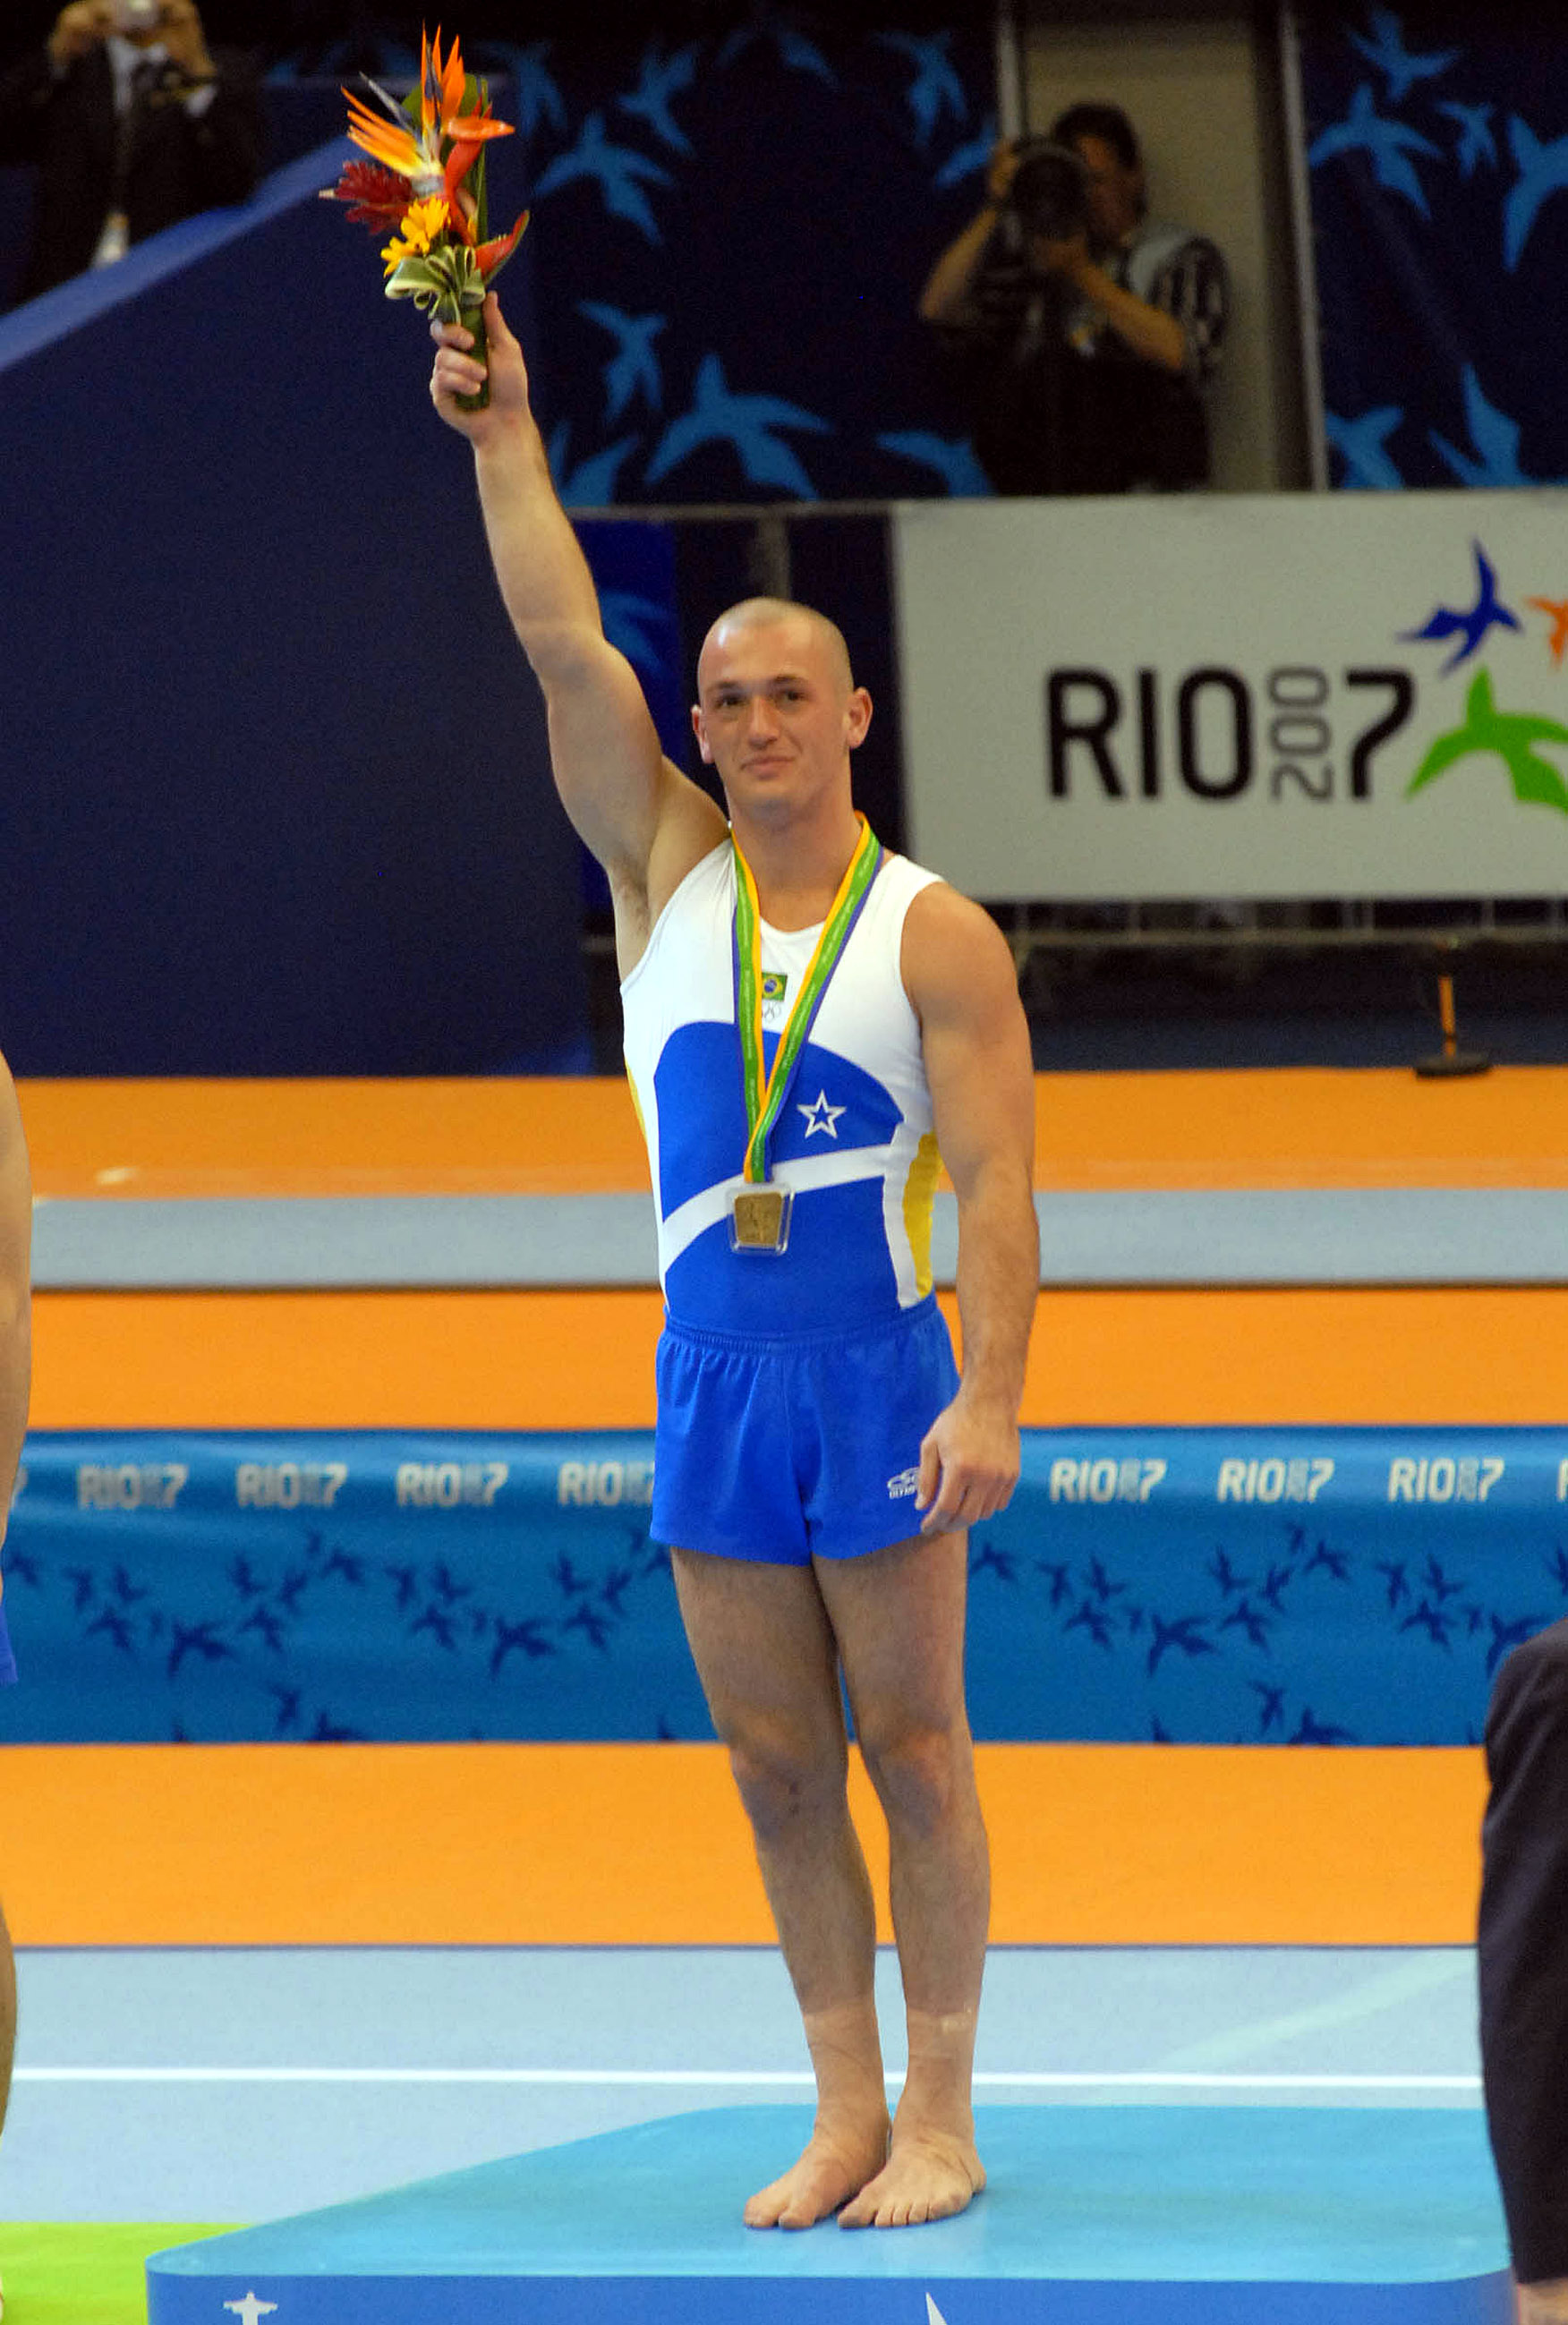 2005 and 2007 World Champion Diego Hypolito